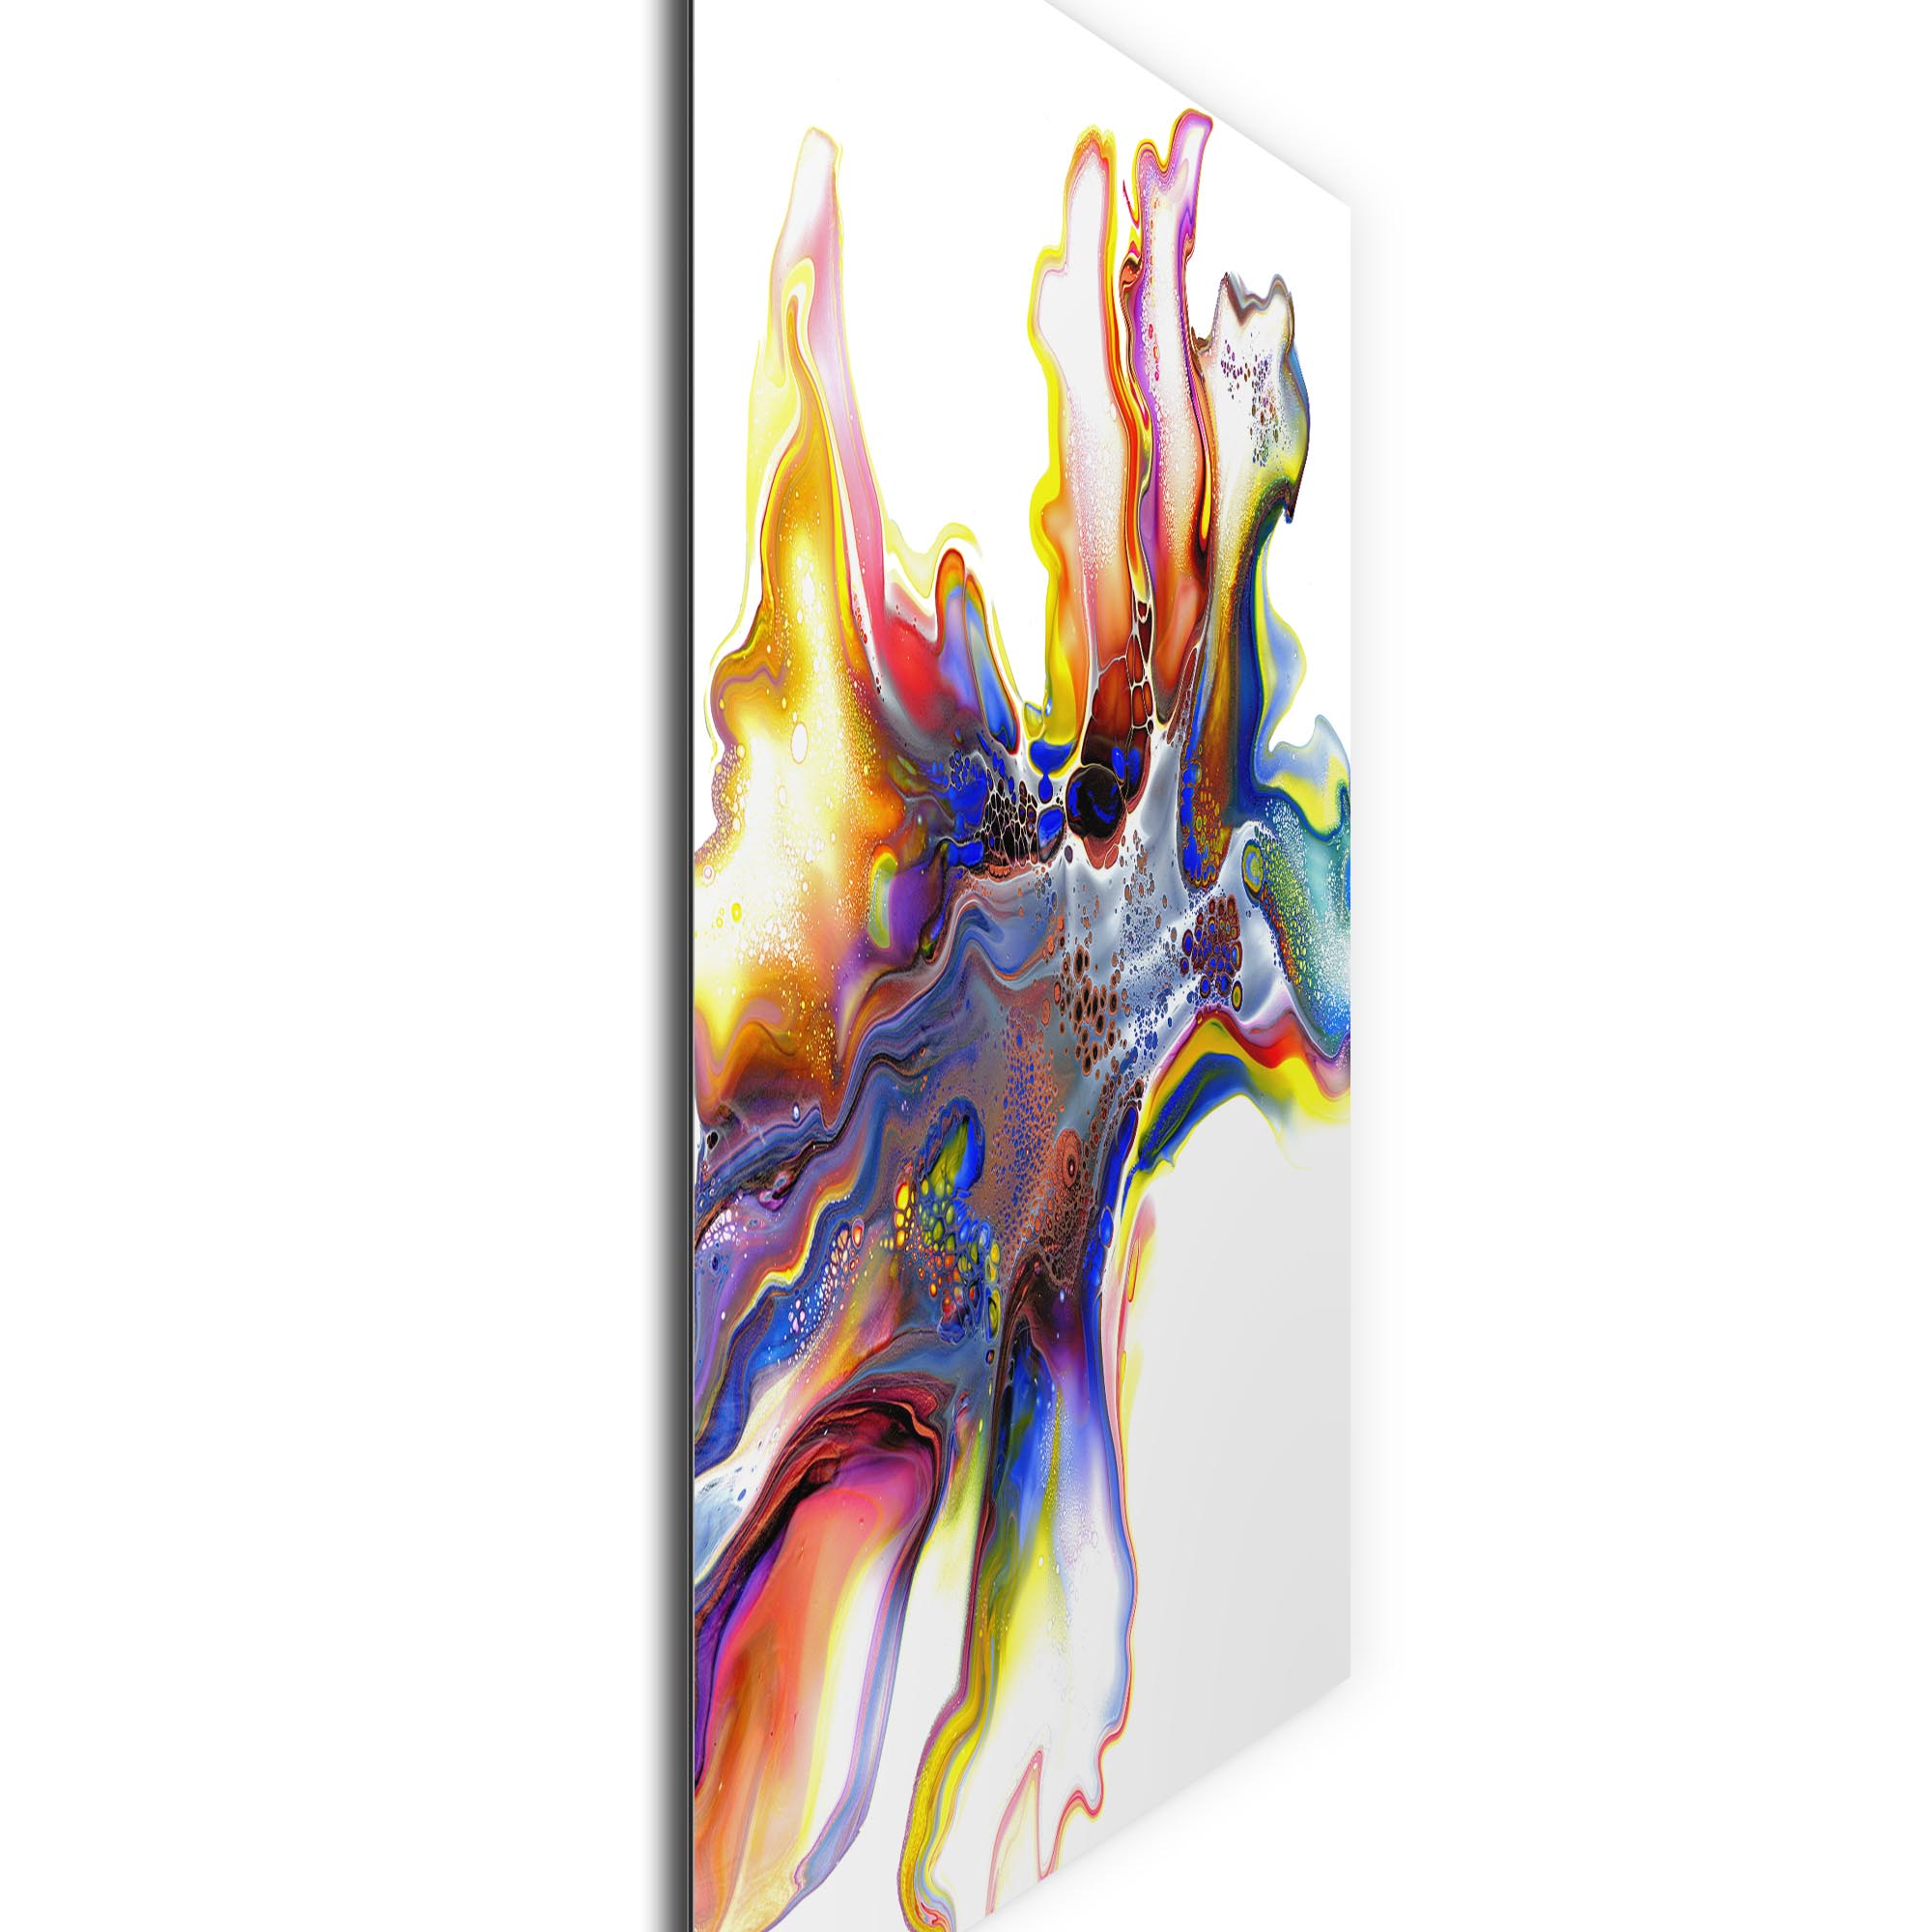 Medley by Elana Reiter - Abstract Wall Art, Modern Home Decor (36in x 36in) - Image 2